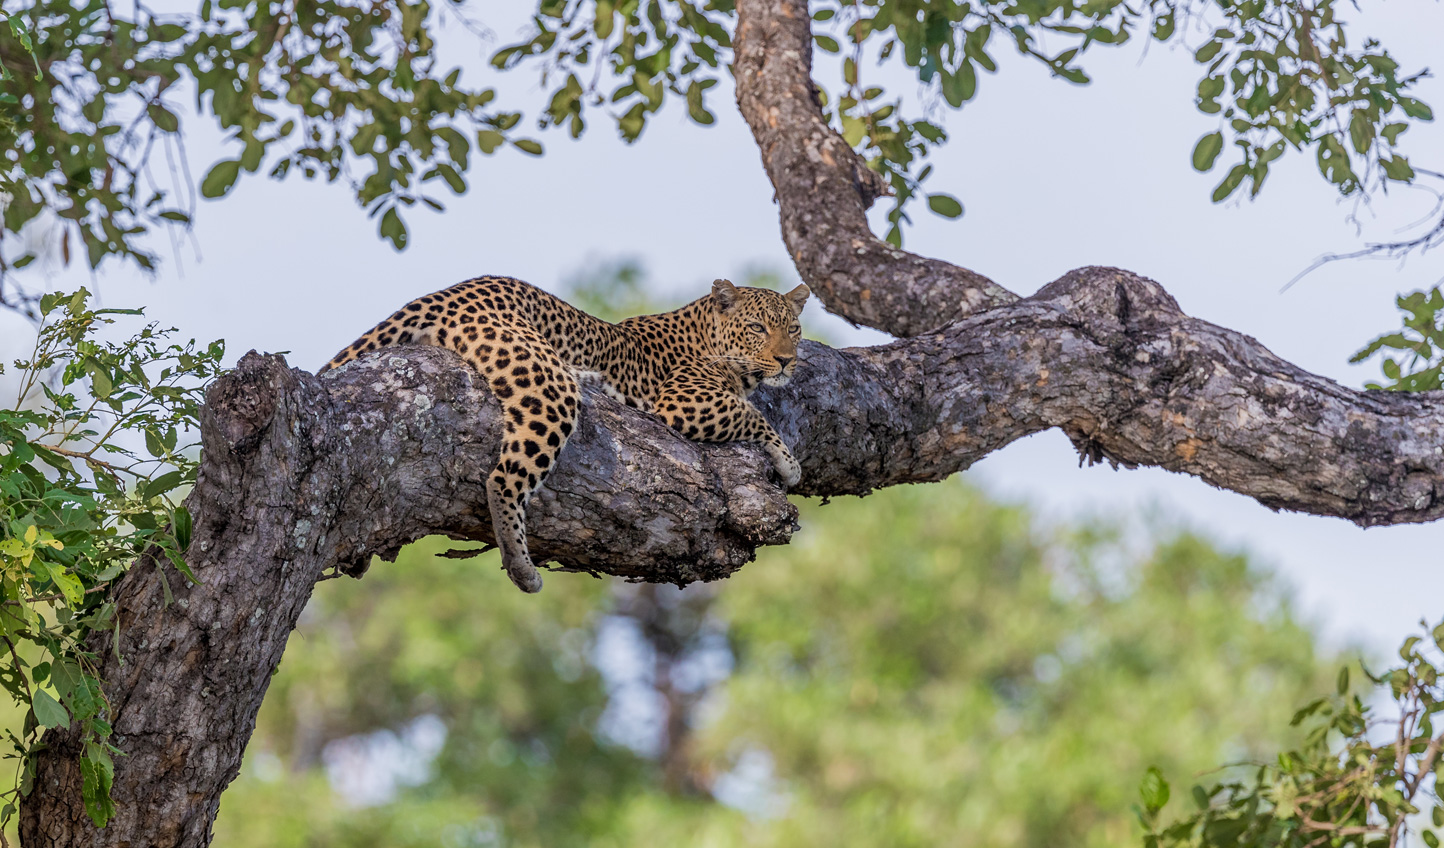 Catch sight of the Big Five in the most unexpected of places